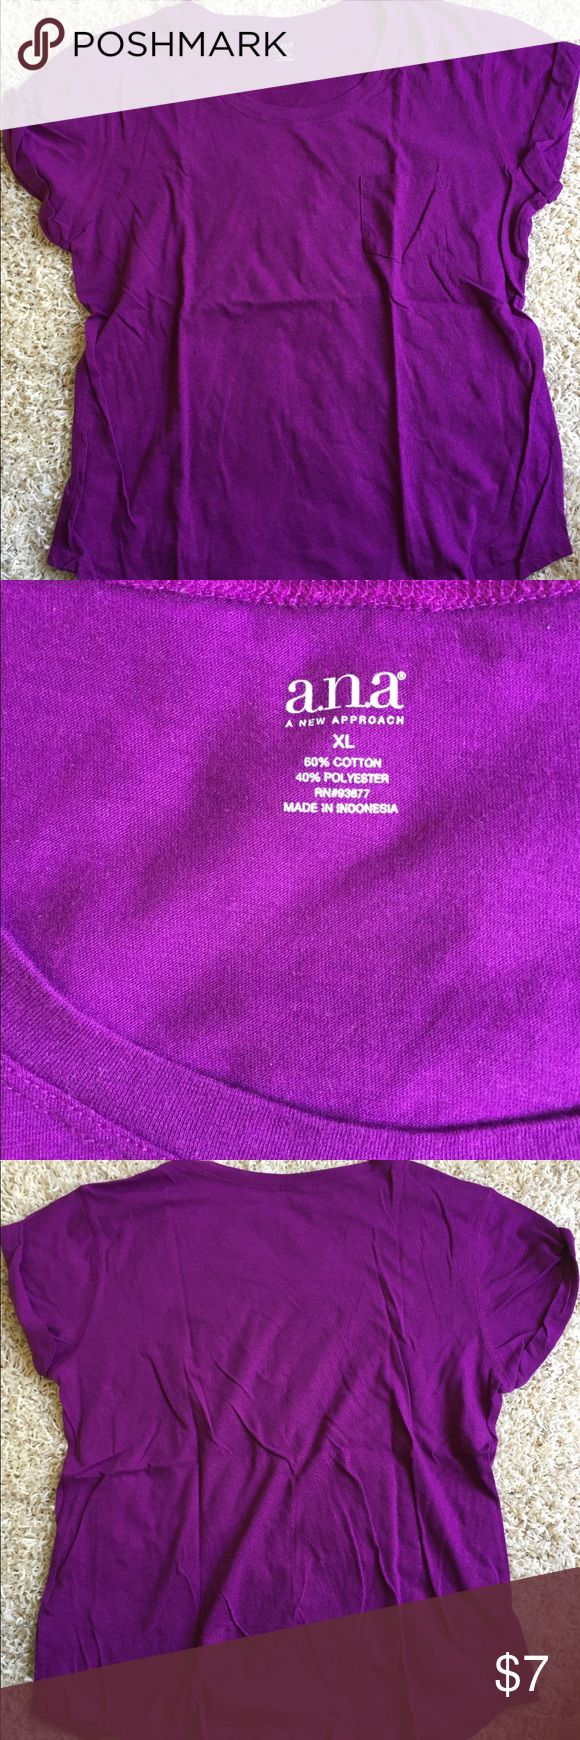 ANA Solid Purple Short Sleeve Top Rolled Sleeves excellent used condition! always washed to brand standards. never put in the dryer. has the cutest pocket and rolled sleeves! 💜💜 a.n.a Tops Tees - Short Sleeve